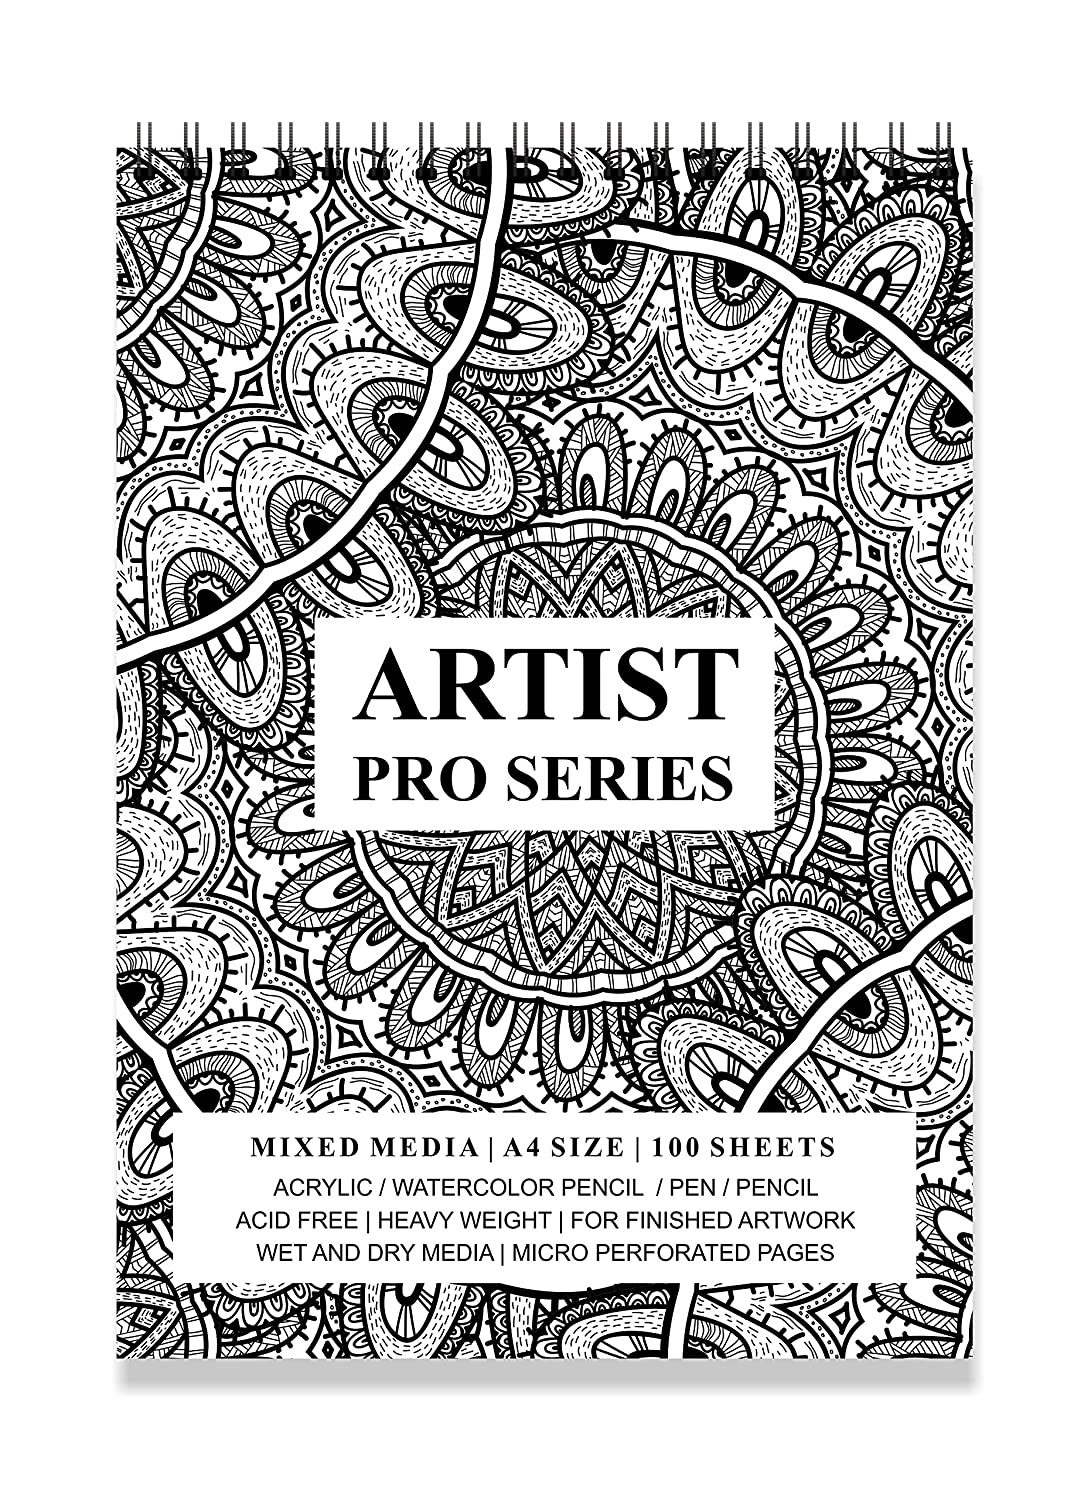 Printelligent Black White Design Spiral Bound Artists Sketch Drawing Book A4 Size 100 Pages 160 Gsm Amazon In Home Kitchen